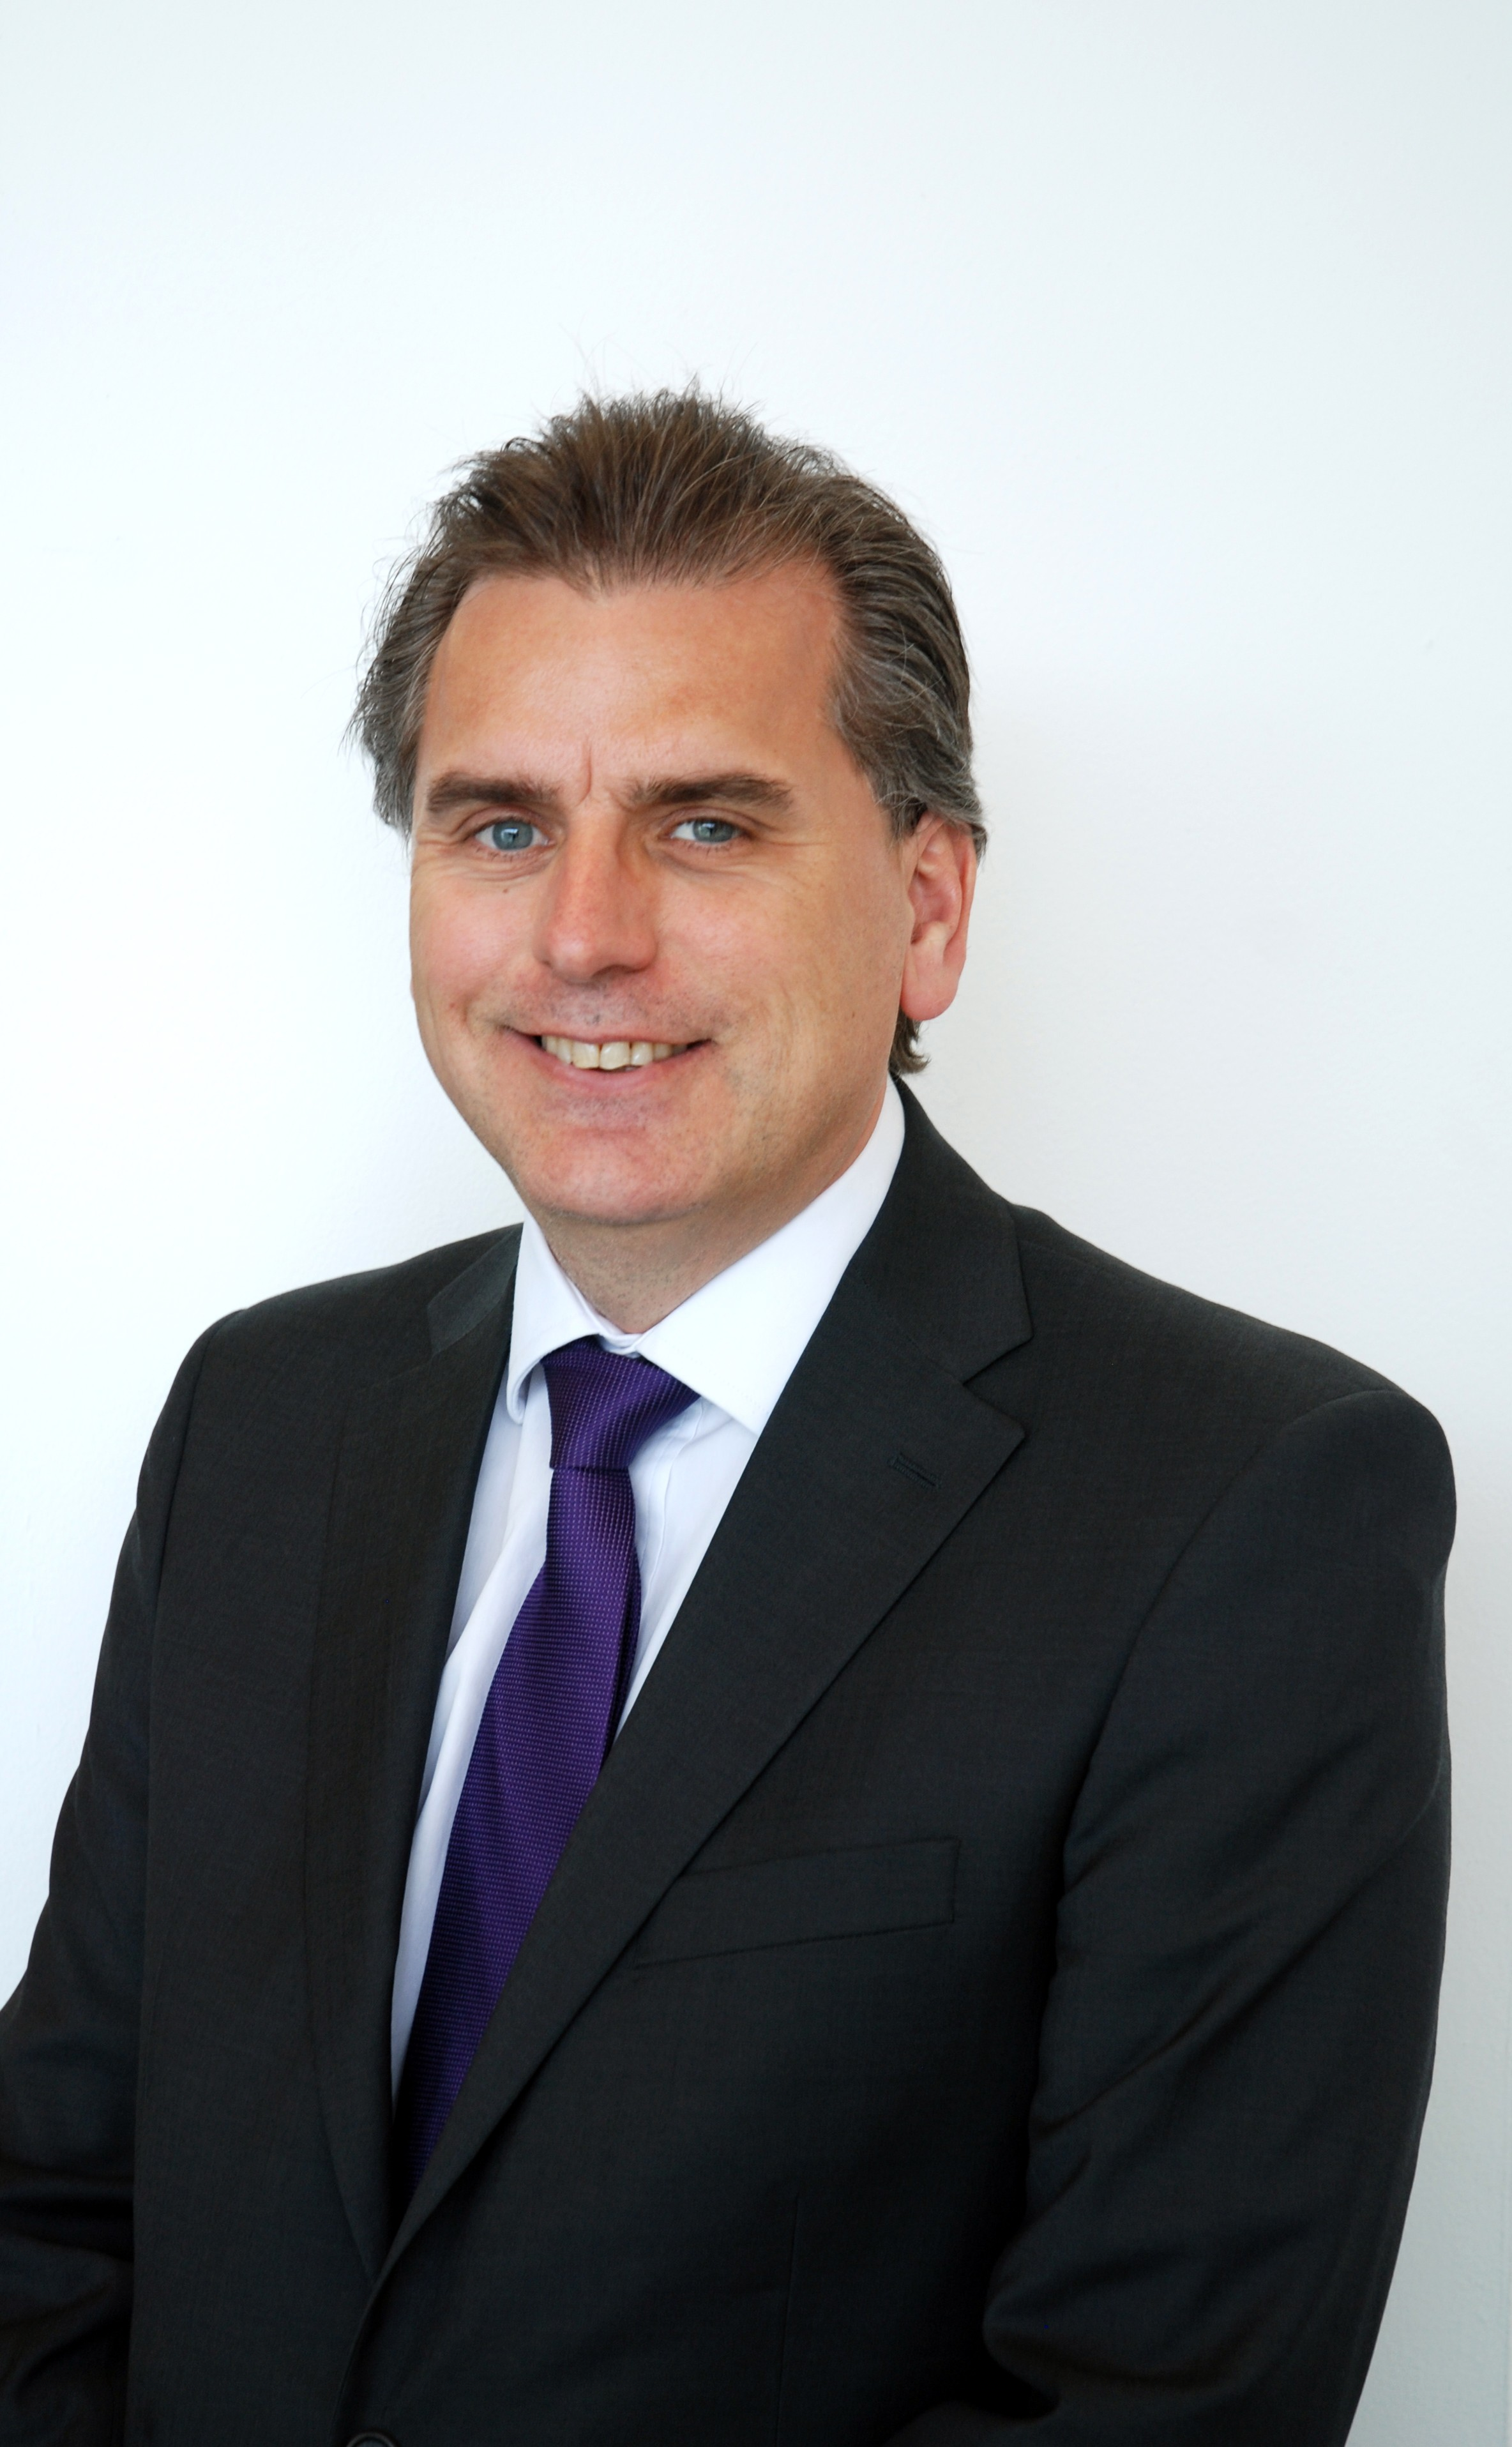 Peter Fuller, managing director of Romans Lettings